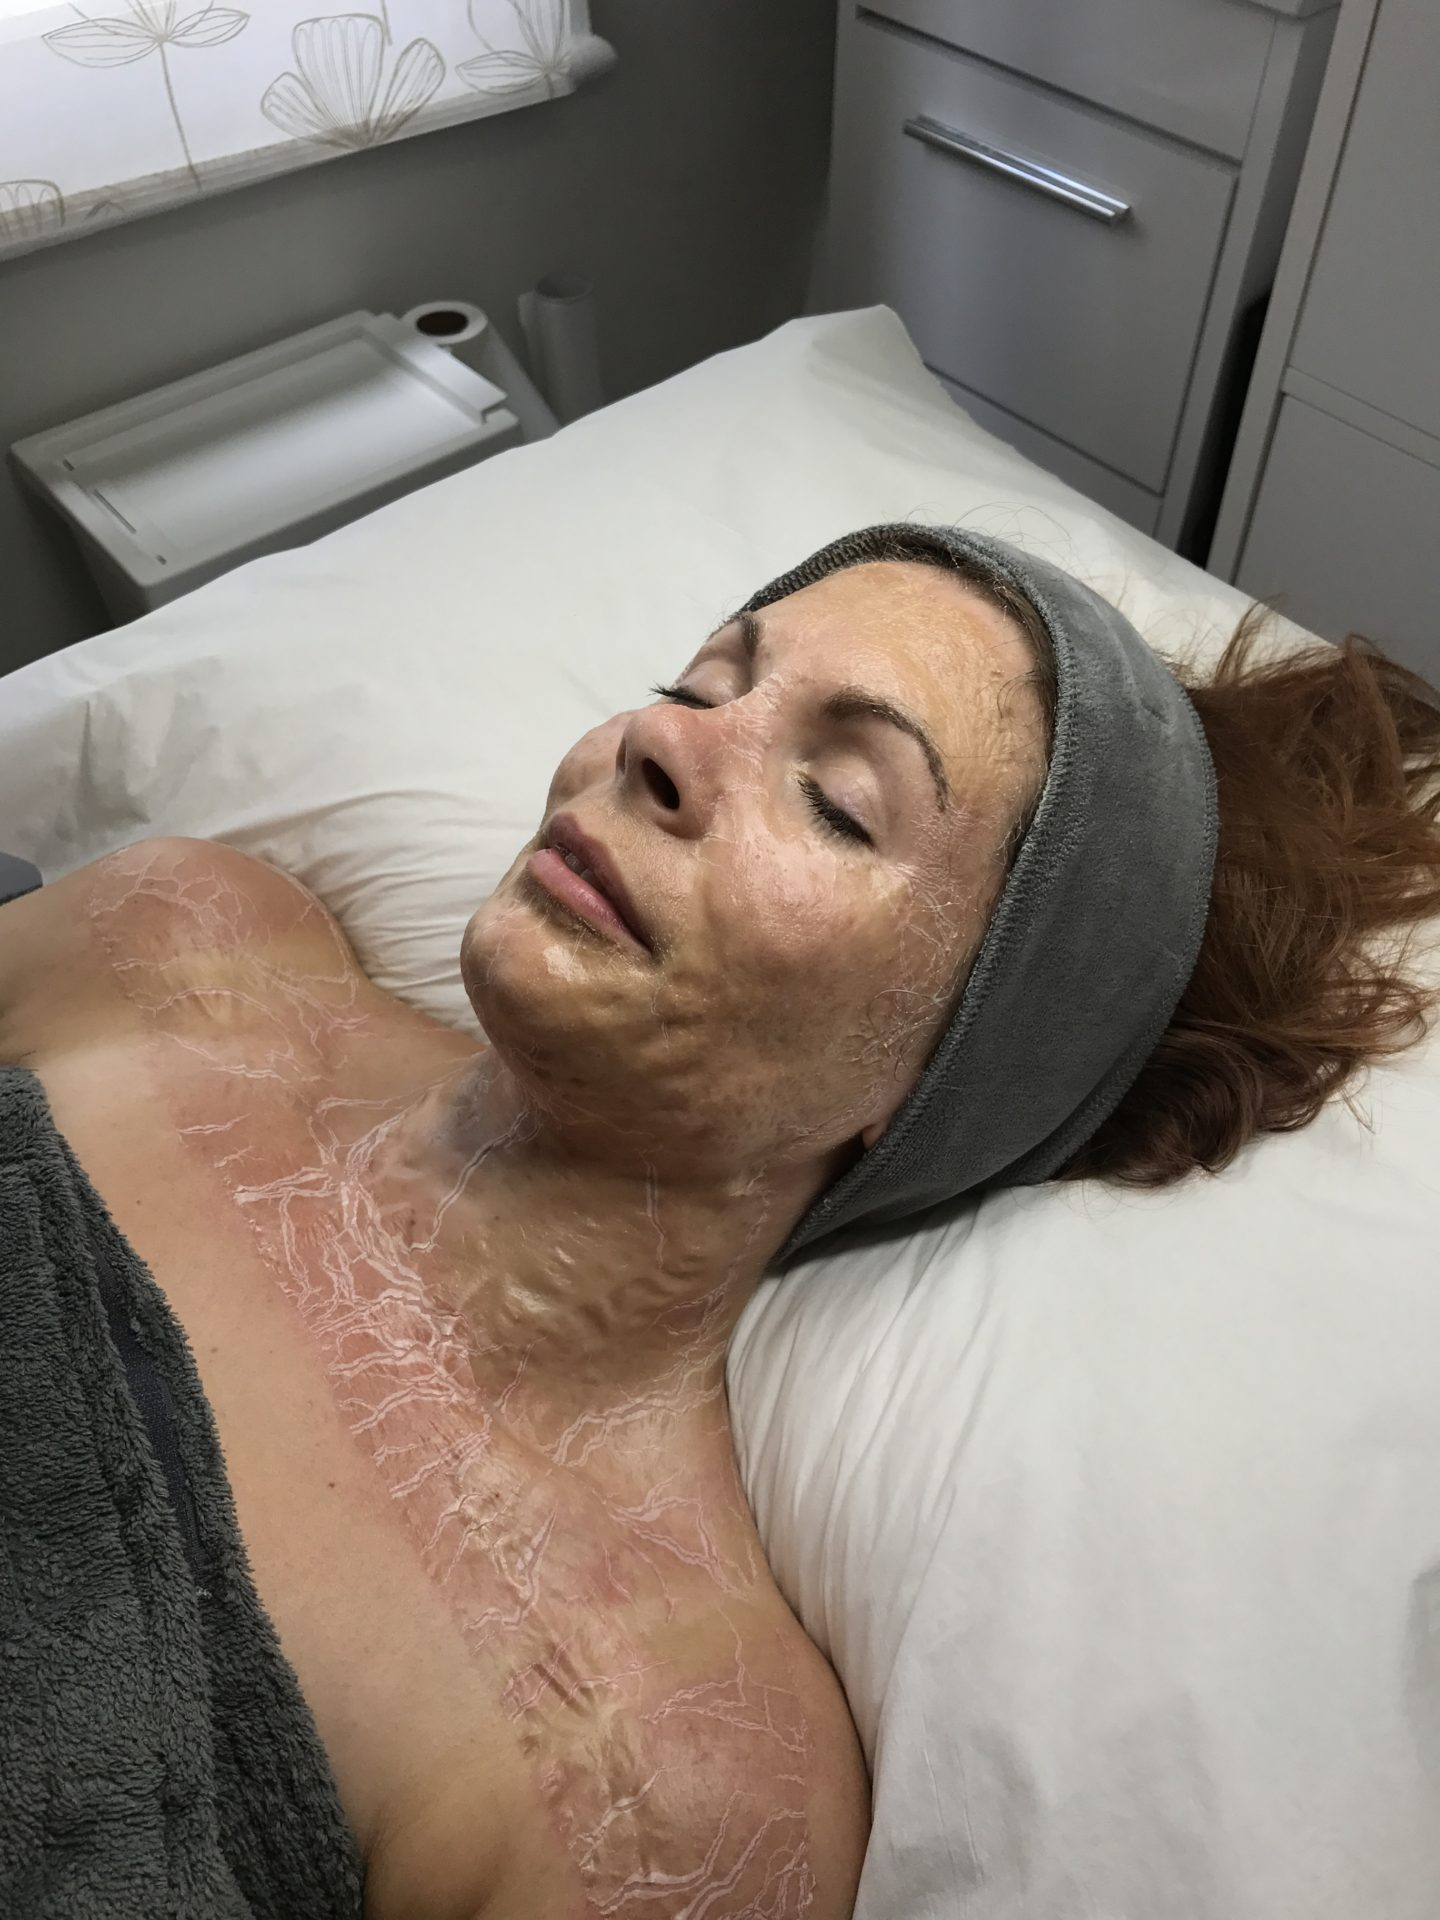 DMK Enzyme Therapy Facial Skin Aspirations